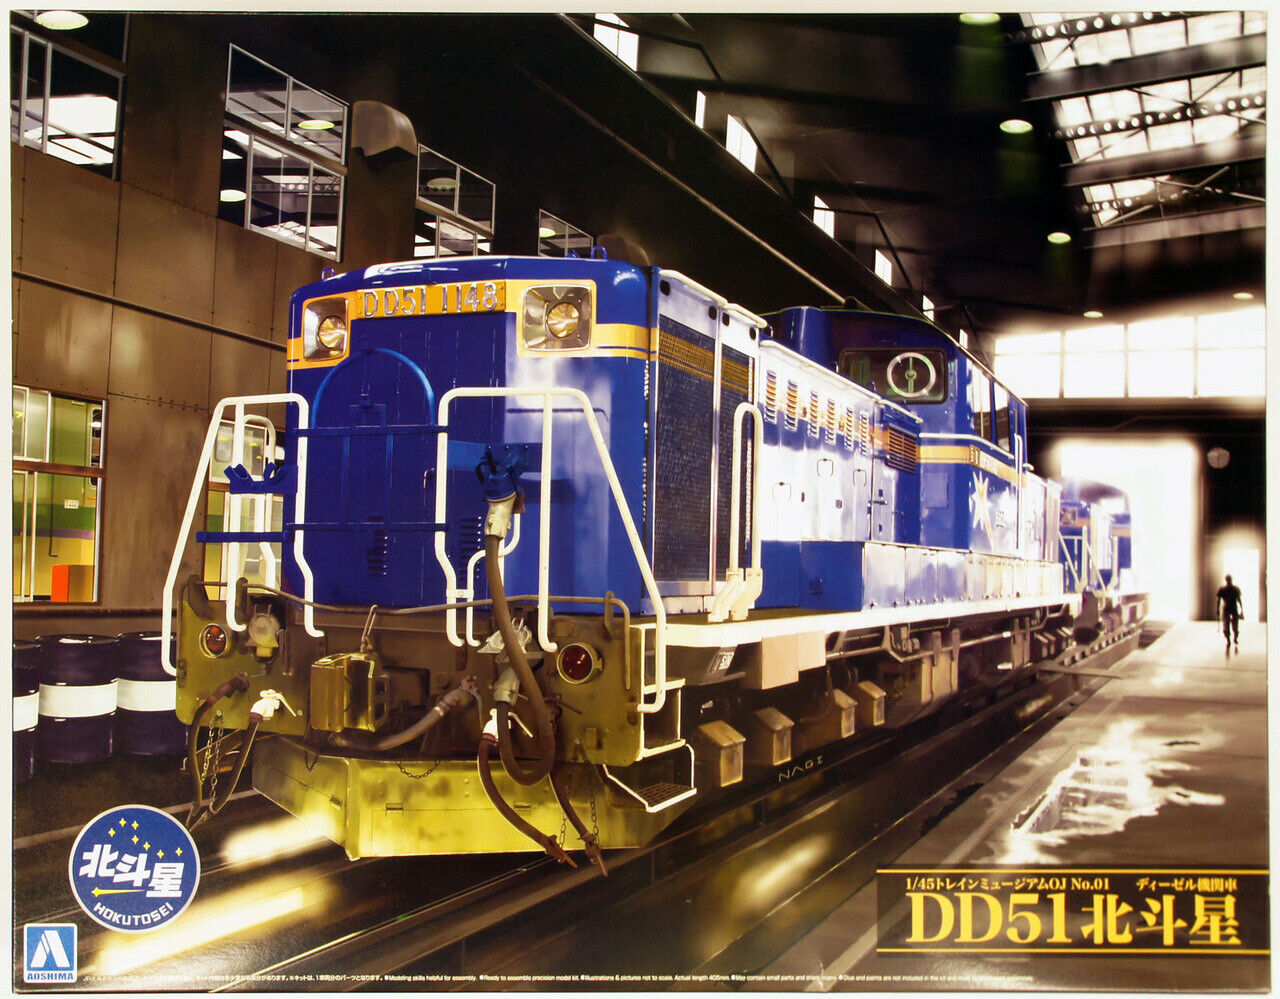 Aoshima  10006 JR Locomotive DD51 Hokutosei 1 45 full Display Scale Kit  risparmia fino al 70%